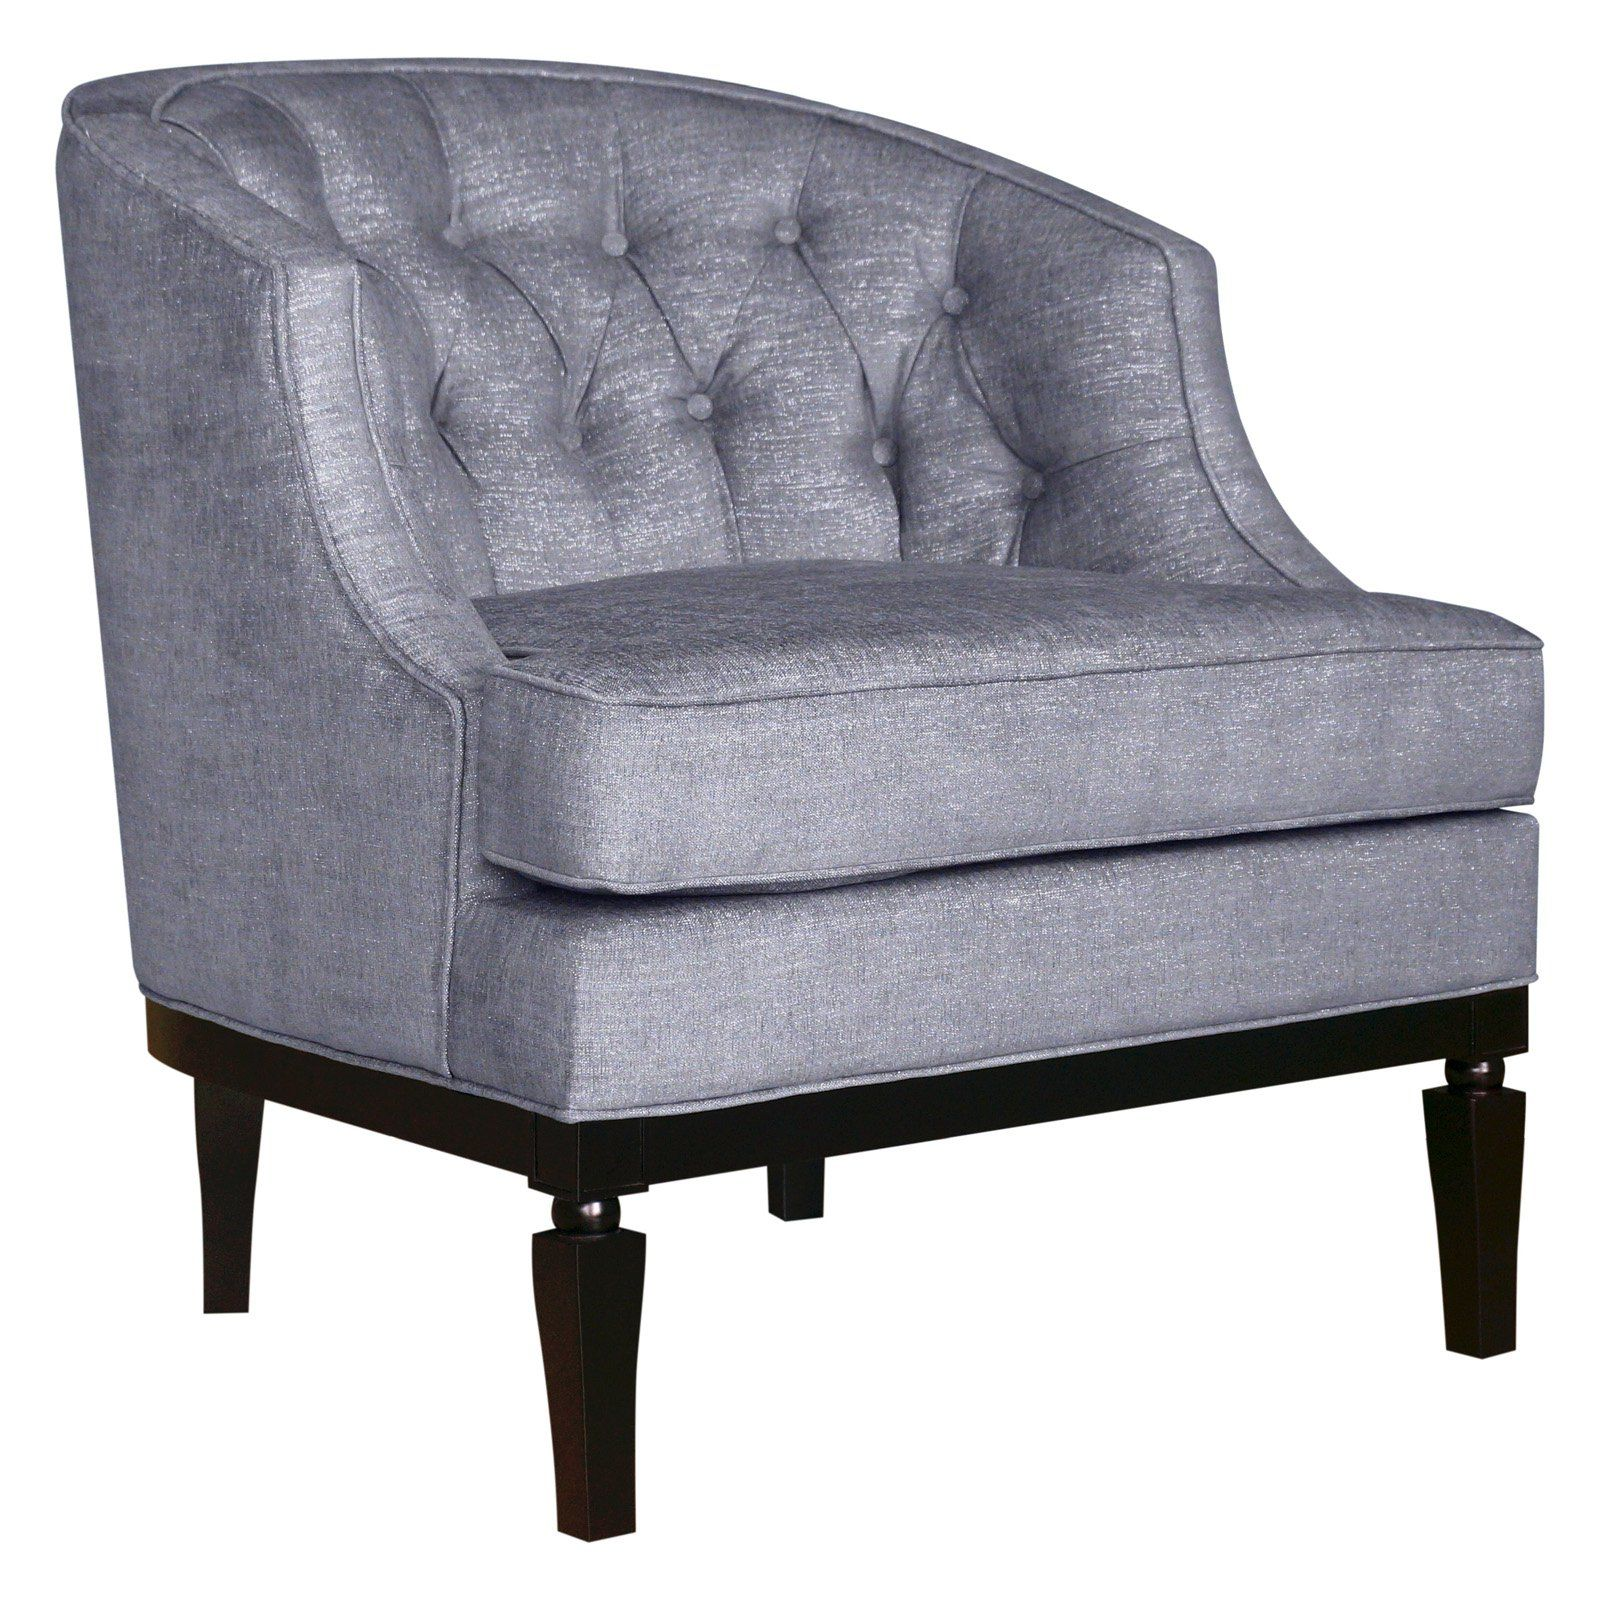 Hd Couture Sonya Stallion Accent Chair: HD Couture Ashley Gleam Linen Barrel Chair